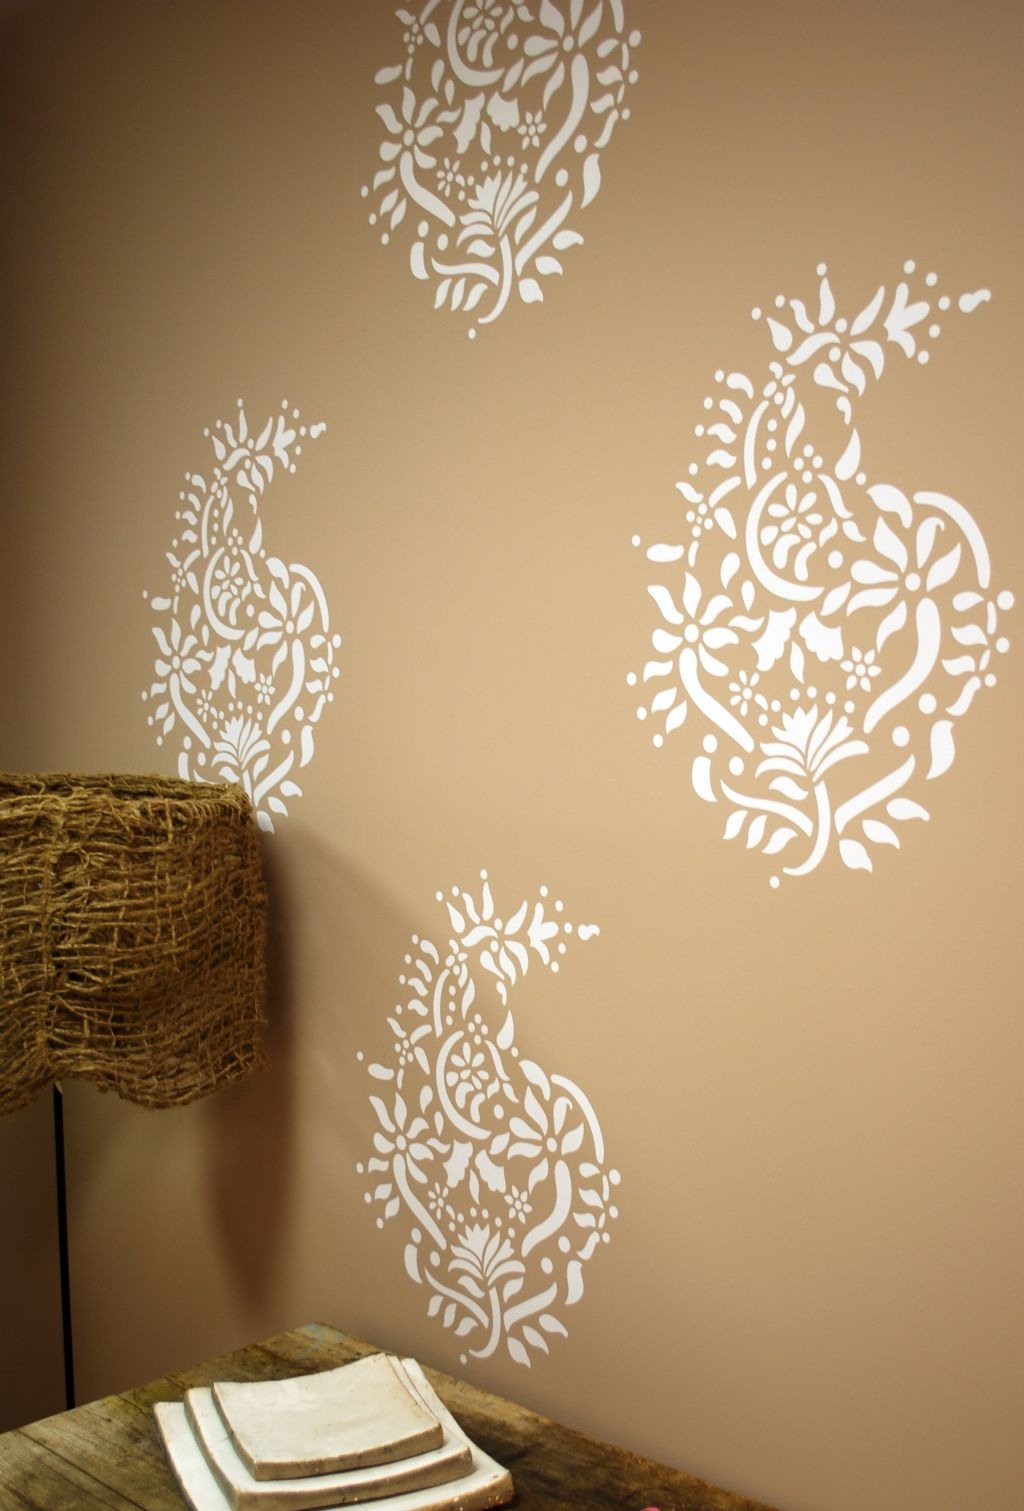 Paisley pattern cool wall painting designs - Exterior wall paint design photos ...